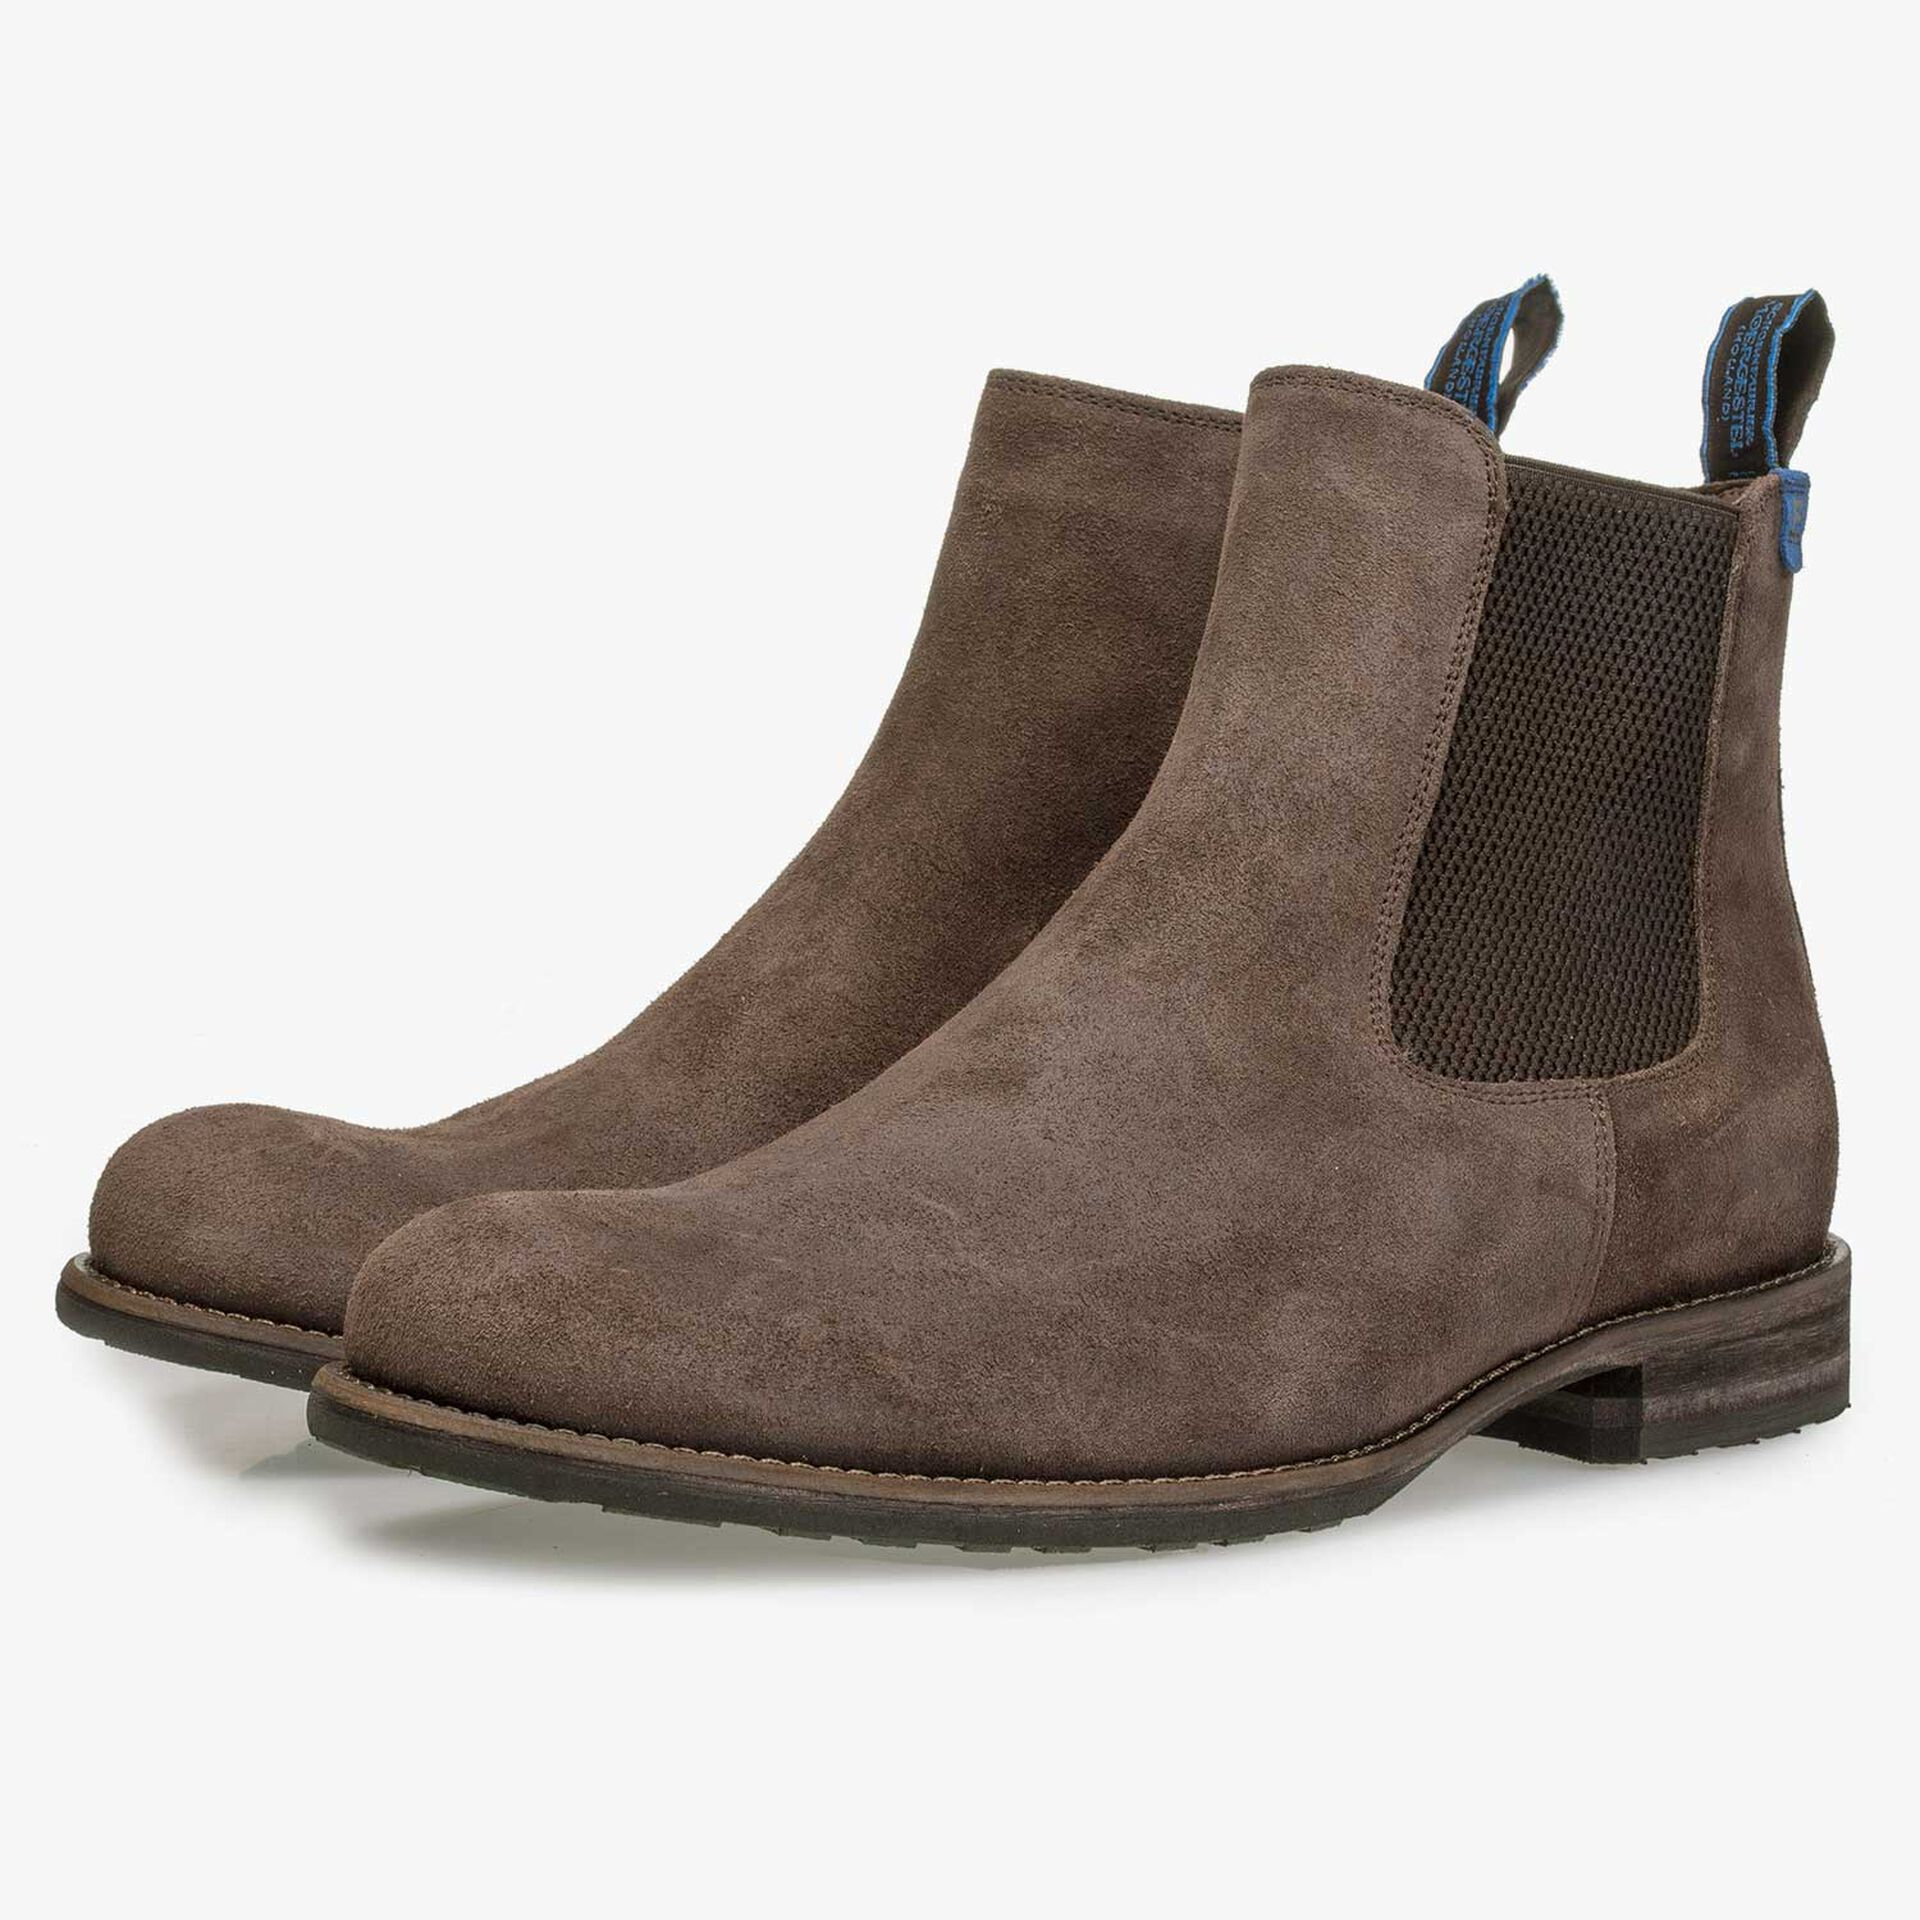 Wool lined brown suede leather Chelsea boot